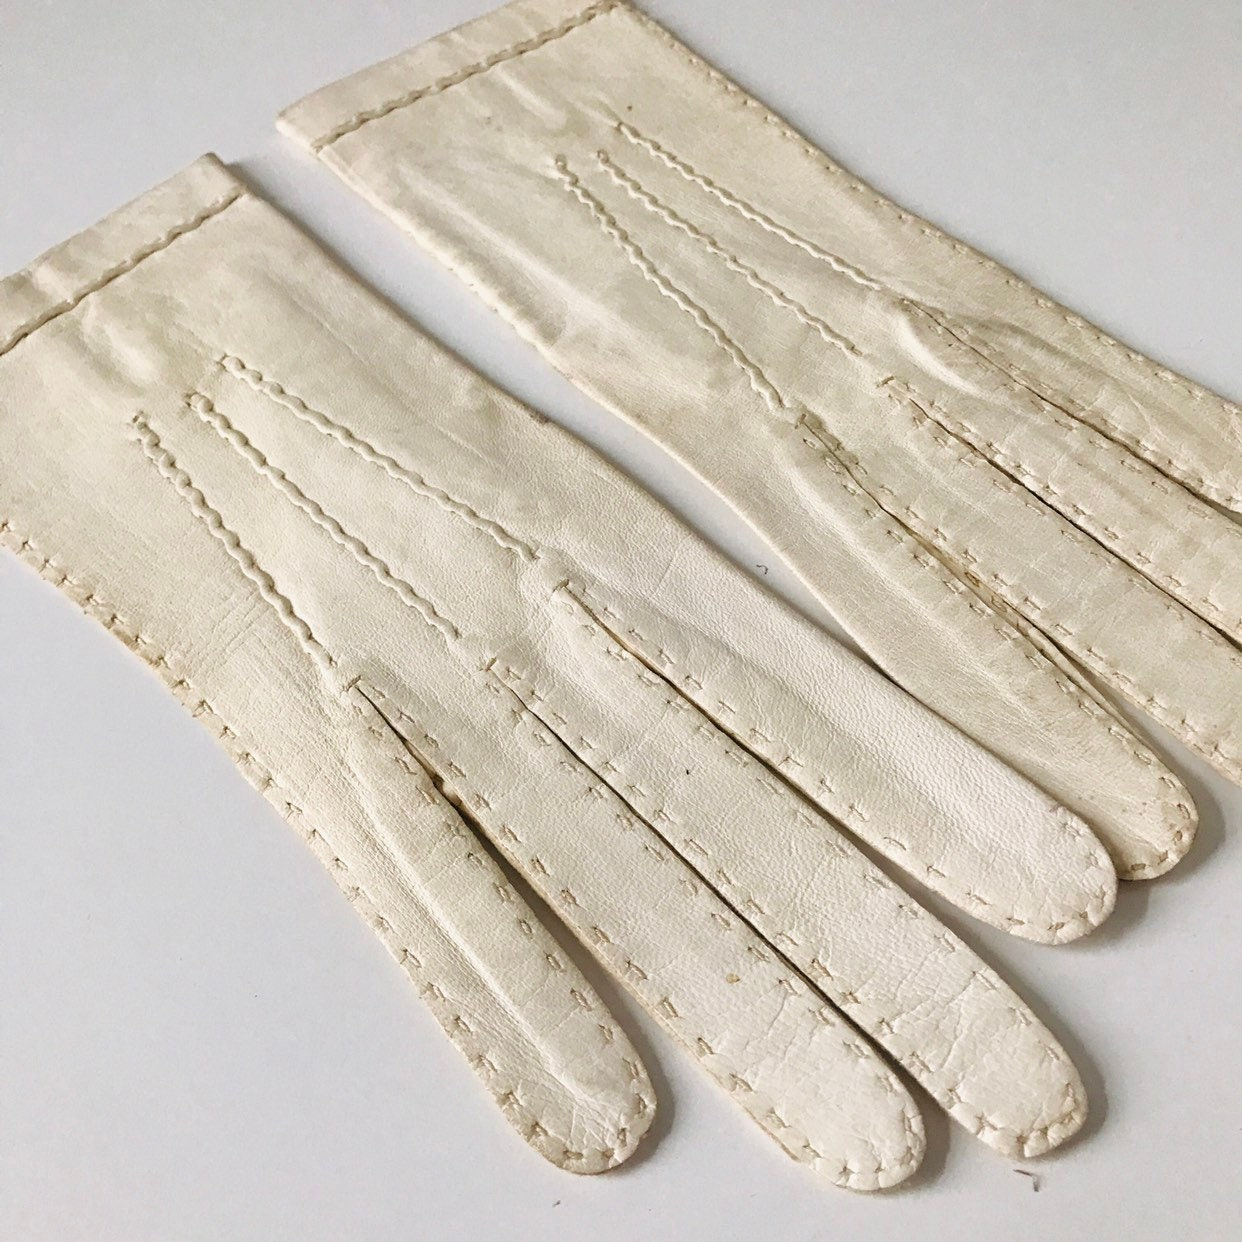 cb73aca13 Vintage gloves, off white leather XS fine soft early 20th century 1910s ...